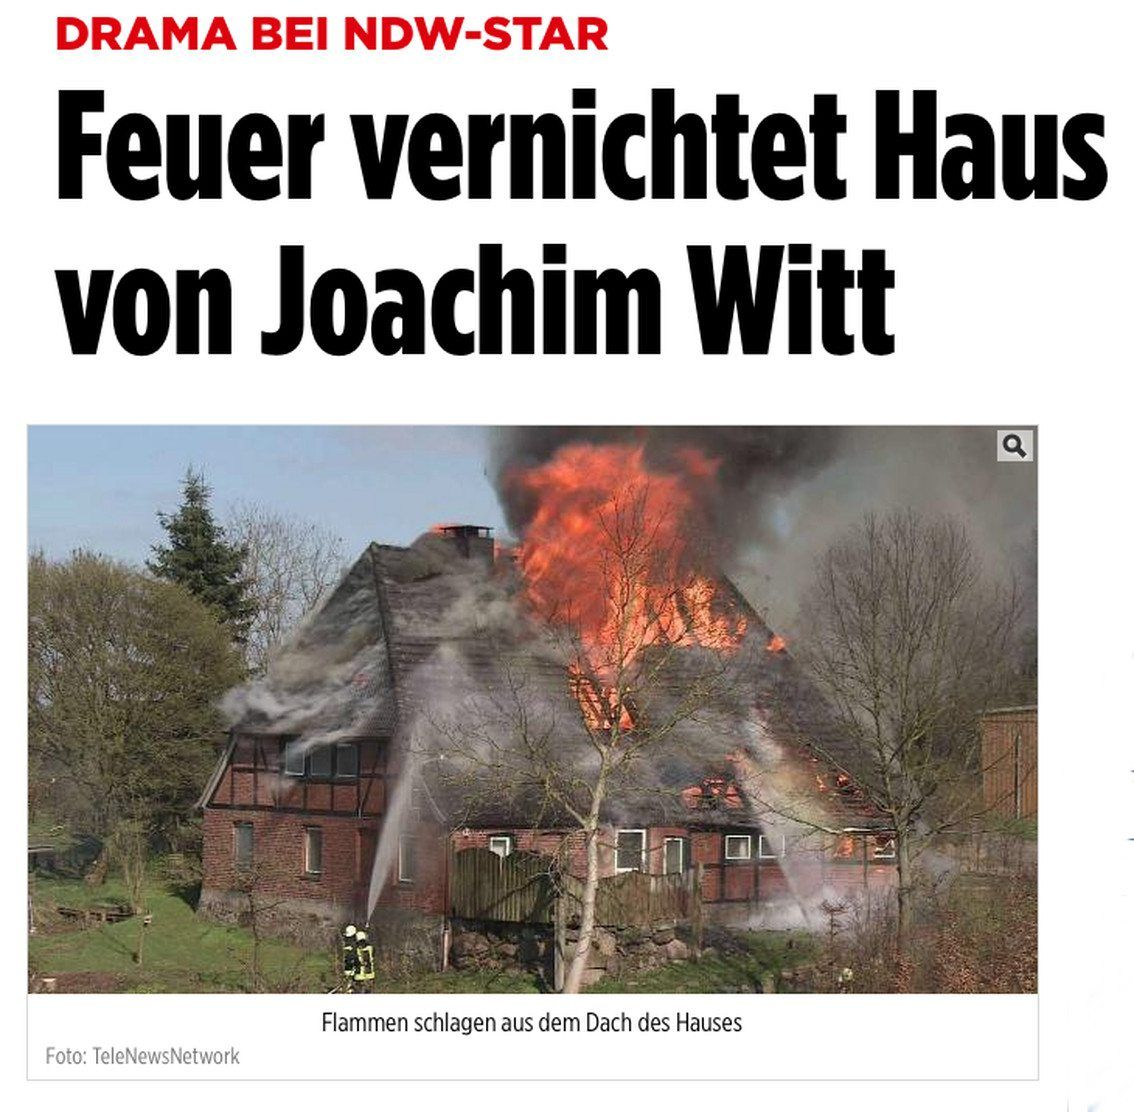 joachim witt s historical house burns to the ground side. Black Bedroom Furniture Sets. Home Design Ideas